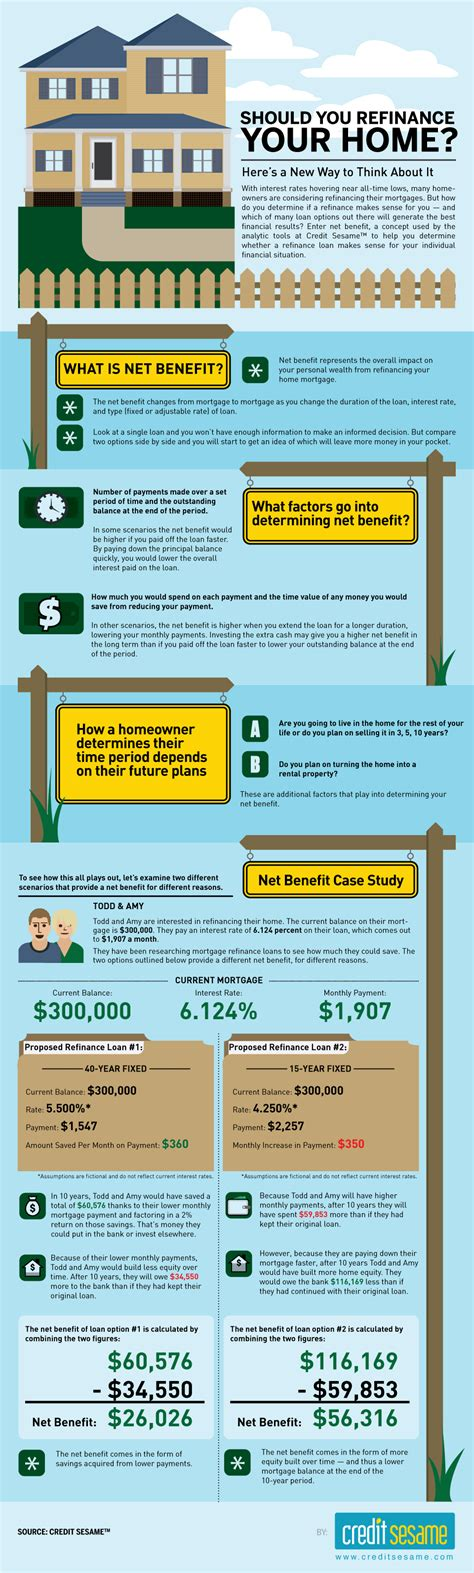 How To Refinance A Line Of Credit To A Fixed Mortgage  A. Lubbock Cable Providers Bail Bonds Greeley Co. What Is Network Diagram Terry Crews Old Spice. American Creativity Academy Dc Ground Fault. Smart Notebook Teacher Resources. Cash For Settlement Payment Vpn Service Mac. What Are Private Equity Funds. Granger Insurance Company Aaa Muffler Garland. What Should I Ask When Buying A Used Car